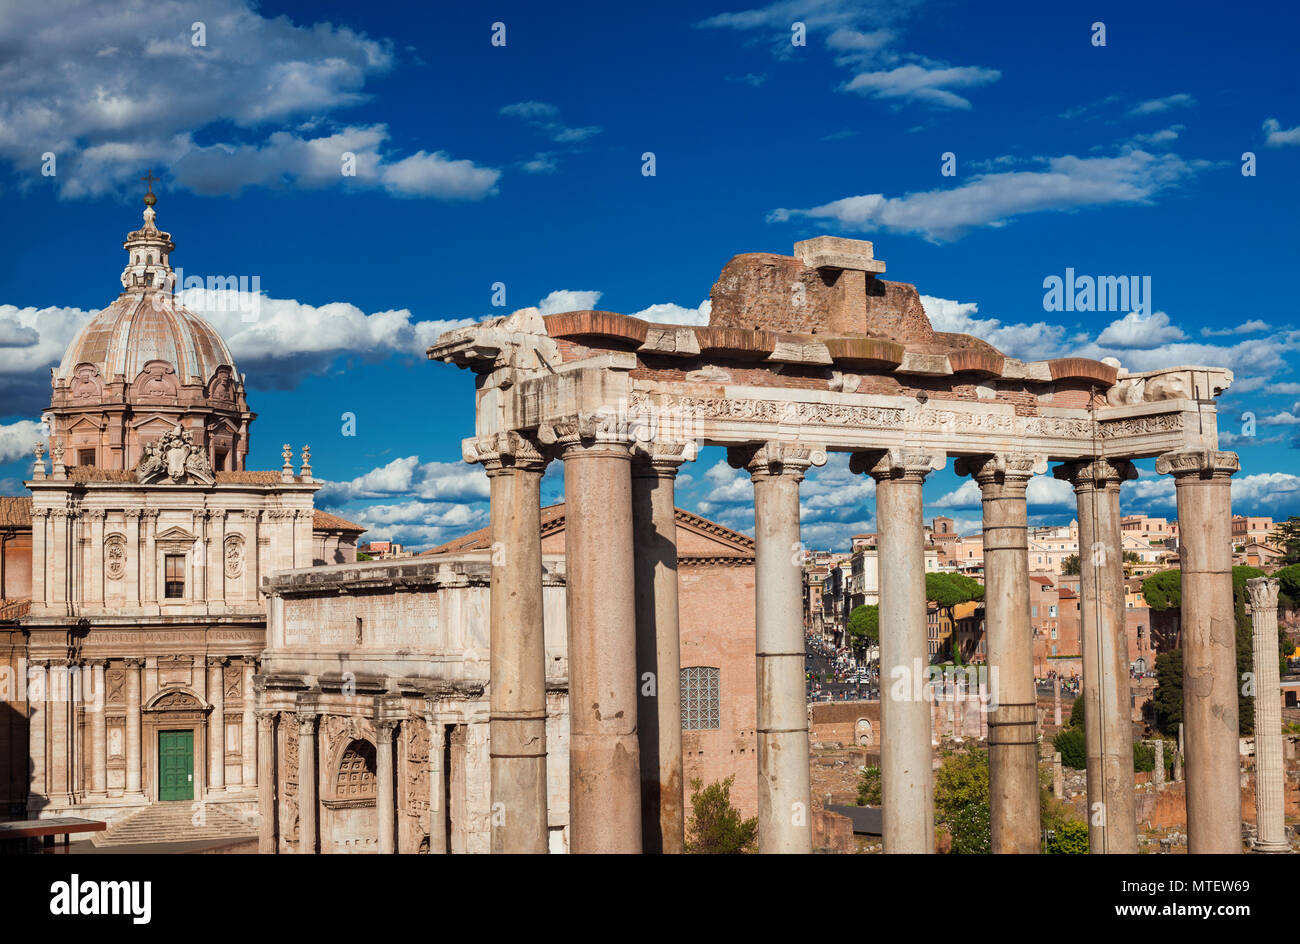 Paganism and Christianity in Rome. Ancient temple and baroque church face each other in Roman Forum - Stock Image